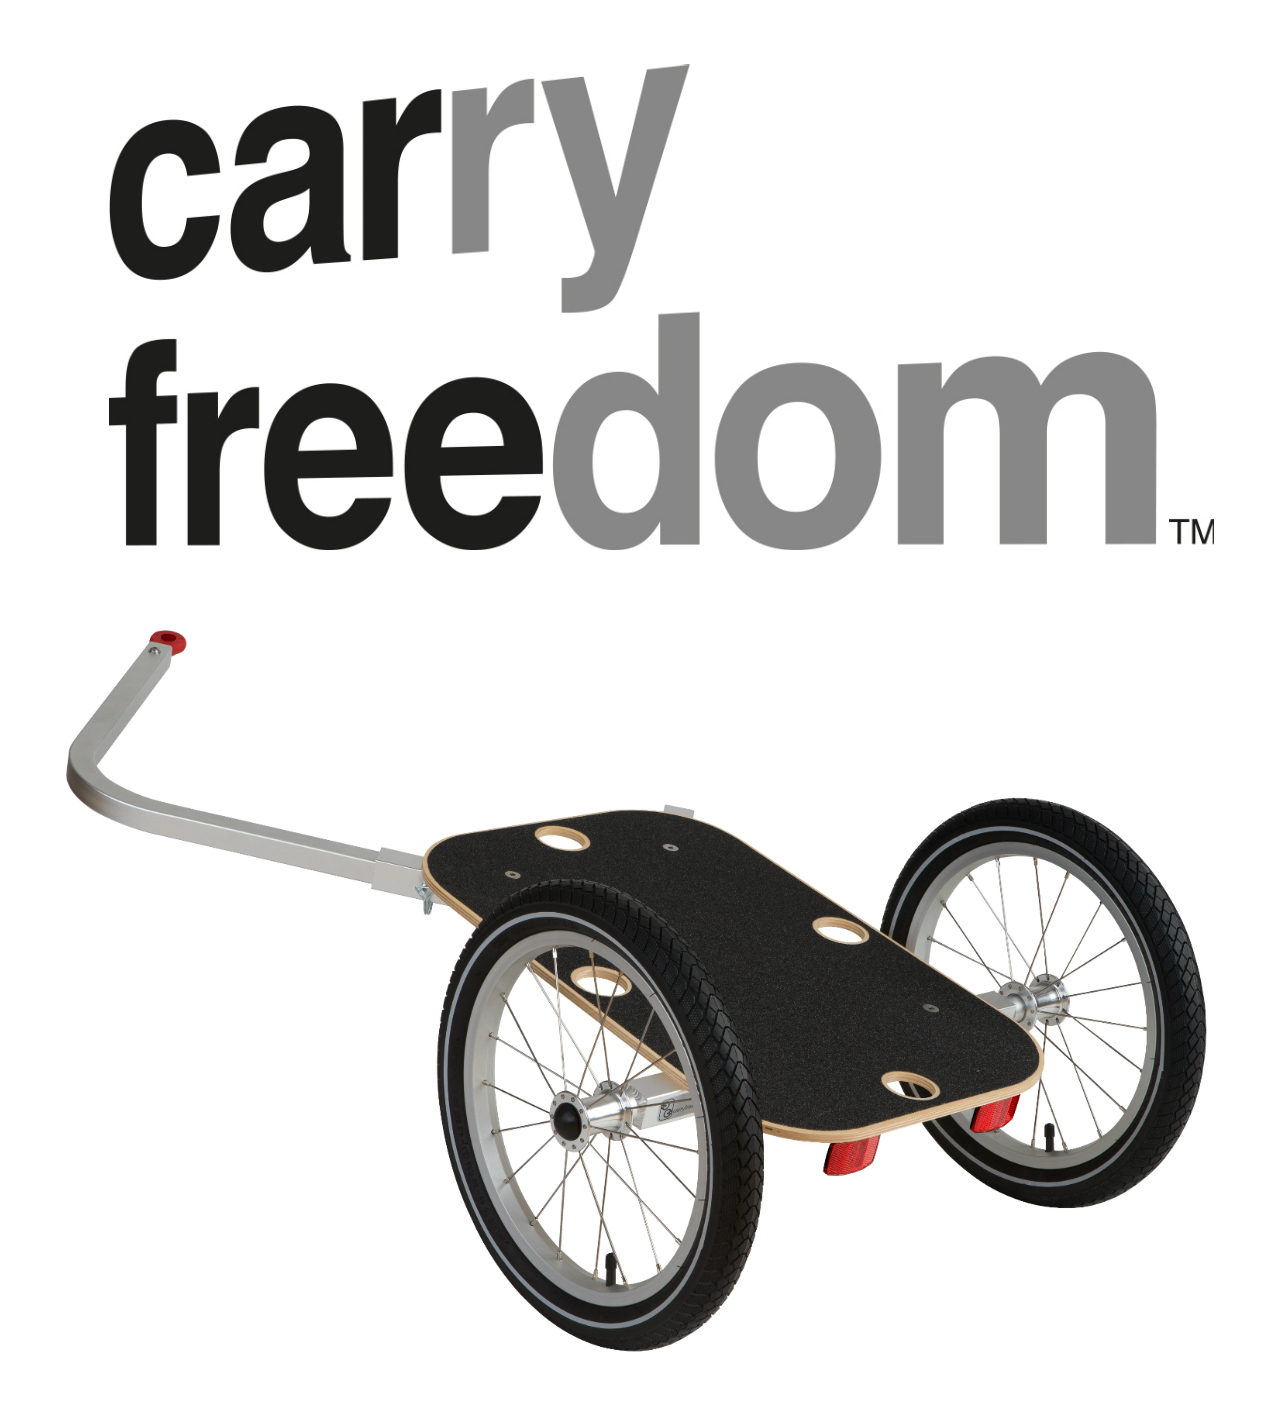 Carry freedom neu